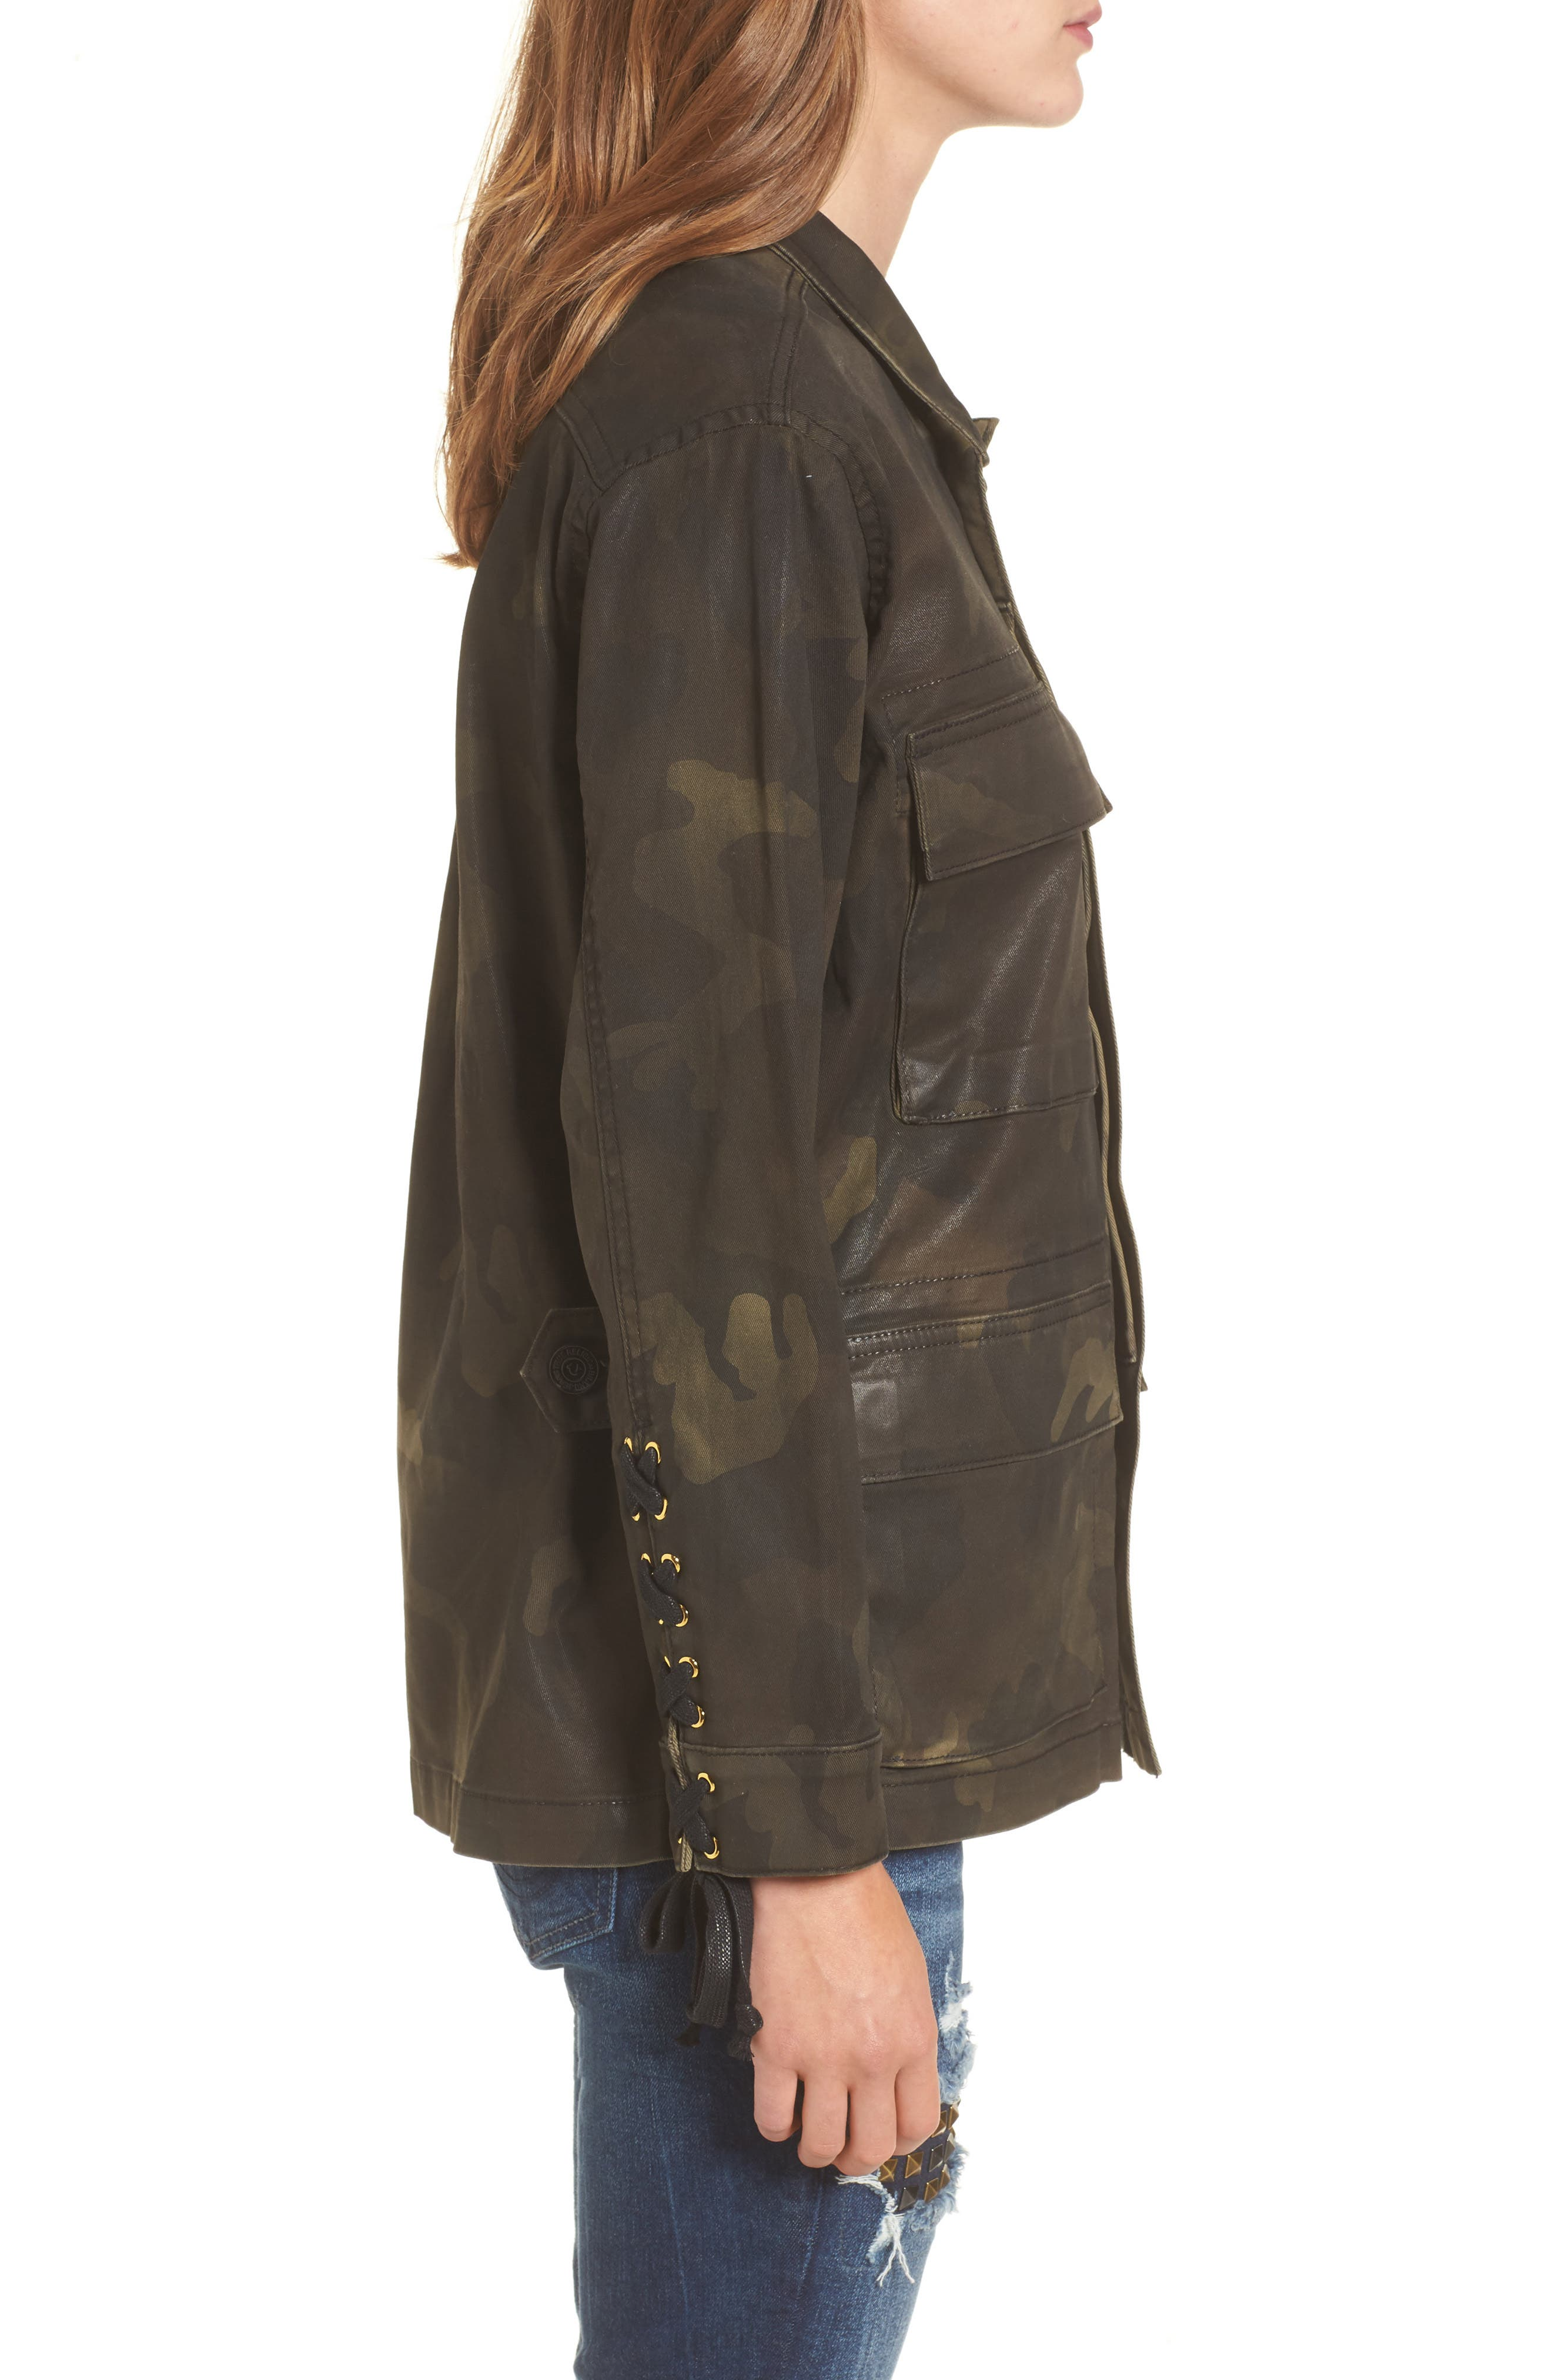 TRUE RELIGION BRAND JEANS,                             Coated Military Jacket,                             Alternate thumbnail 3, color,                             300